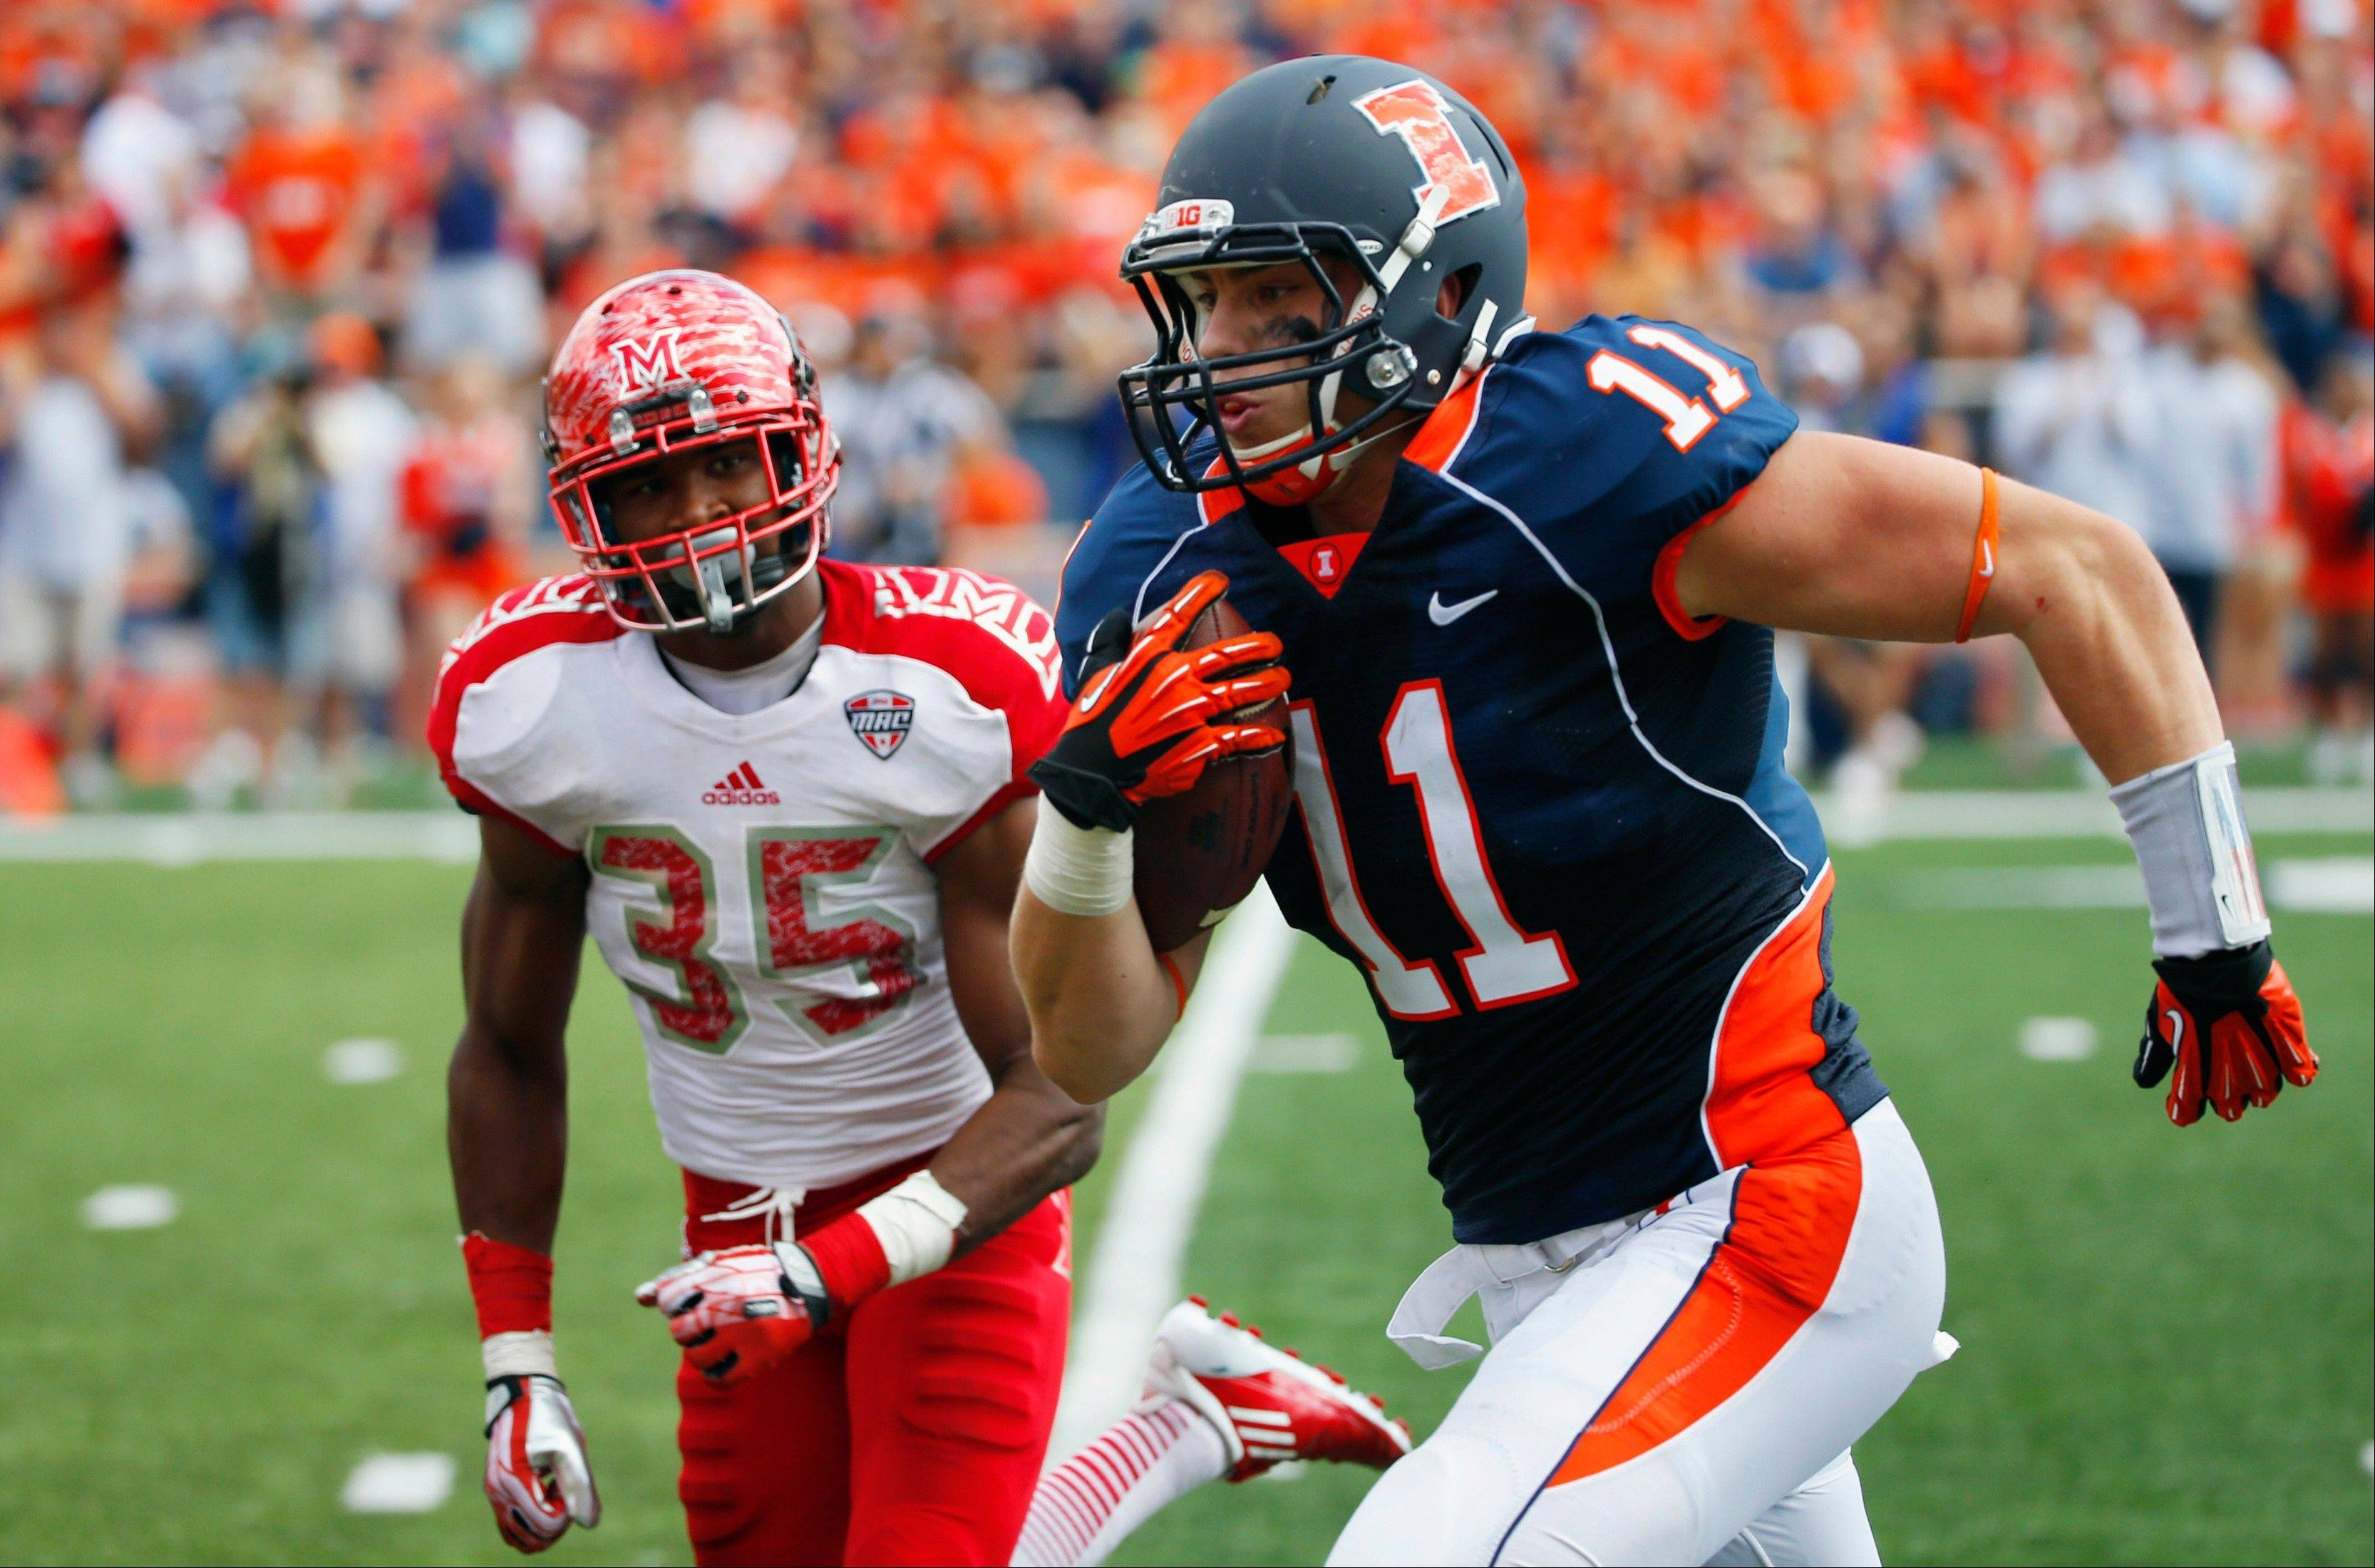 Illinois tight end Matt LaCosse runs in for a touchdown past Miami (Ohio) defensive back Brison Burris during Saturday's big win in Champaign.